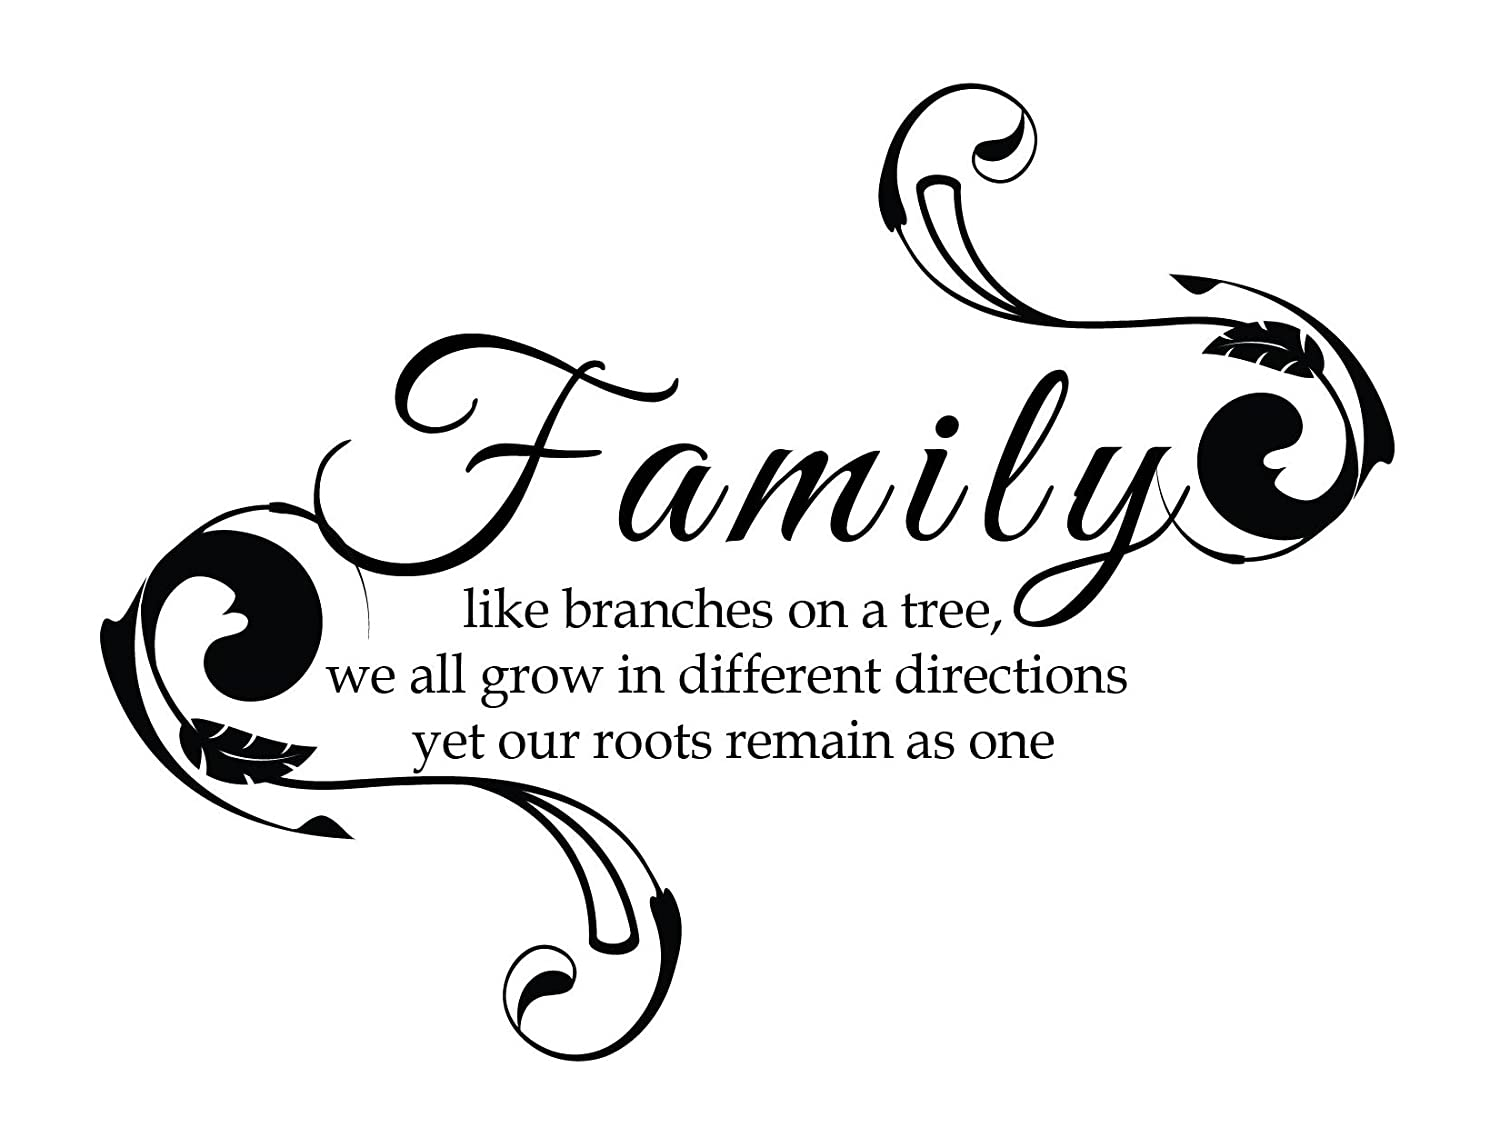 Amazoncom Newclew Family Like Branches On A Tree We All Grow In